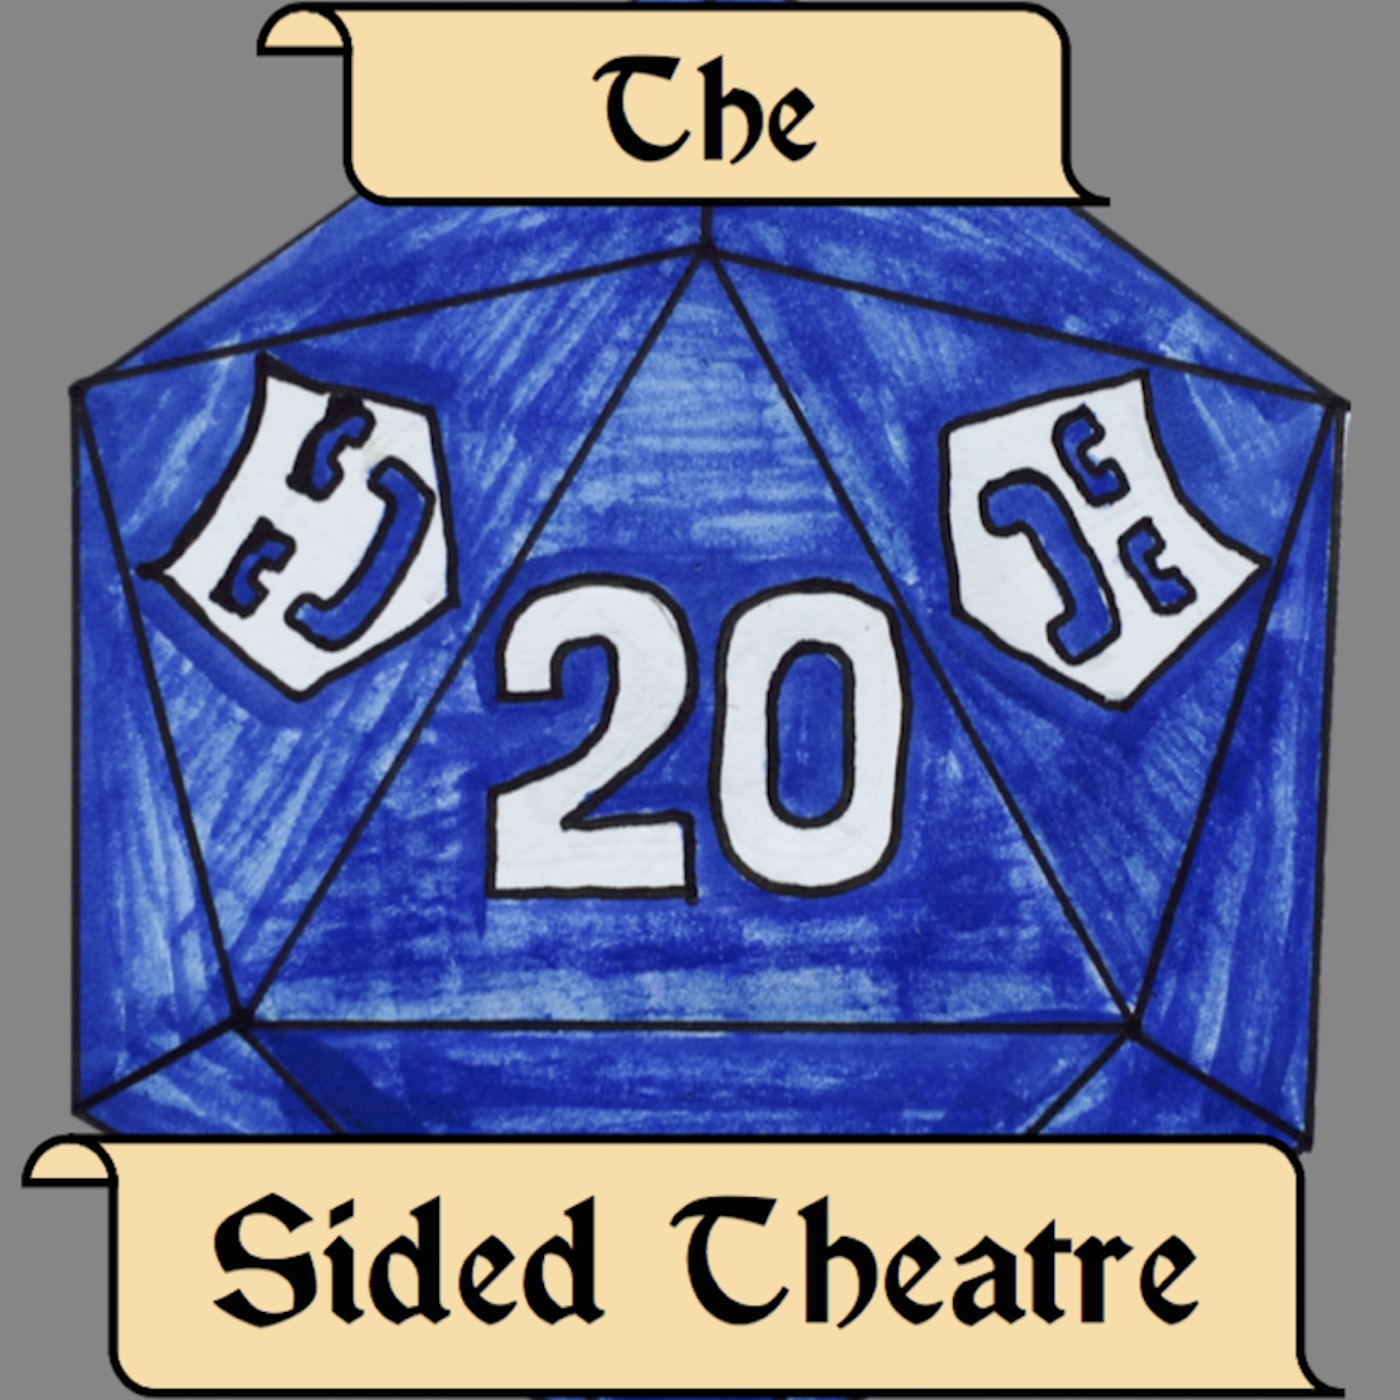 The 20-Sided Theatre - The 20-Sided Theatre